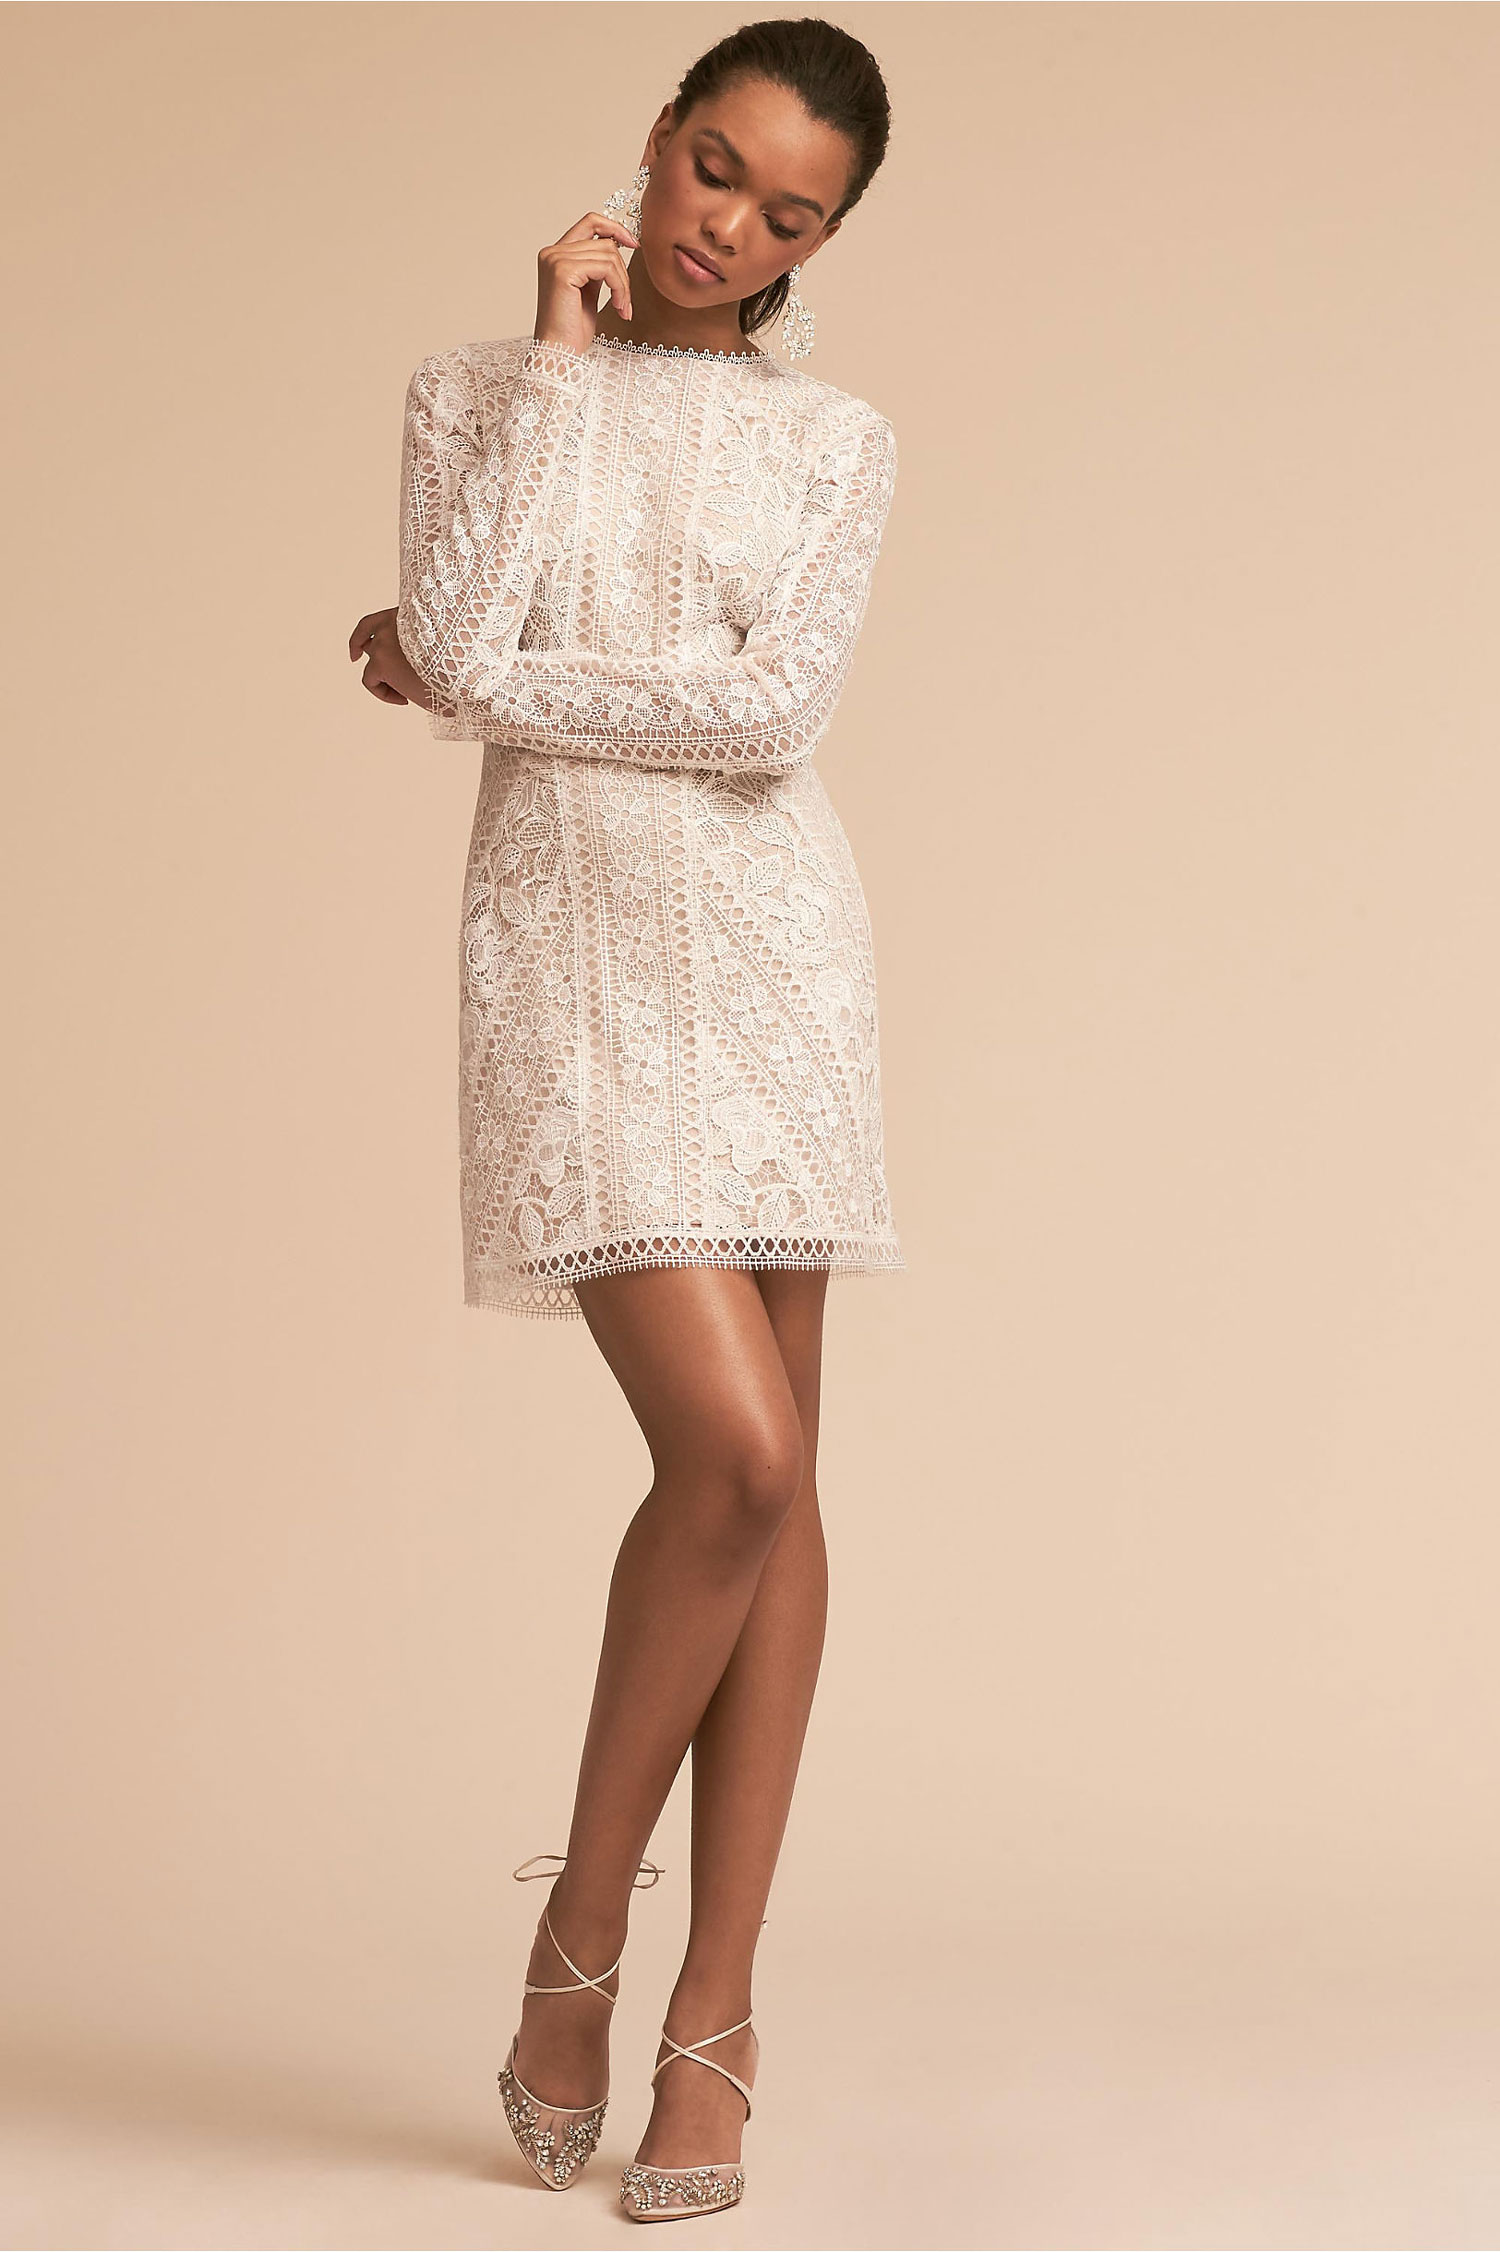 Cason long sleeve lace mini dress tadashi shoji bhldn rehearsal dinner bachelorette party bridal shower dress ideas